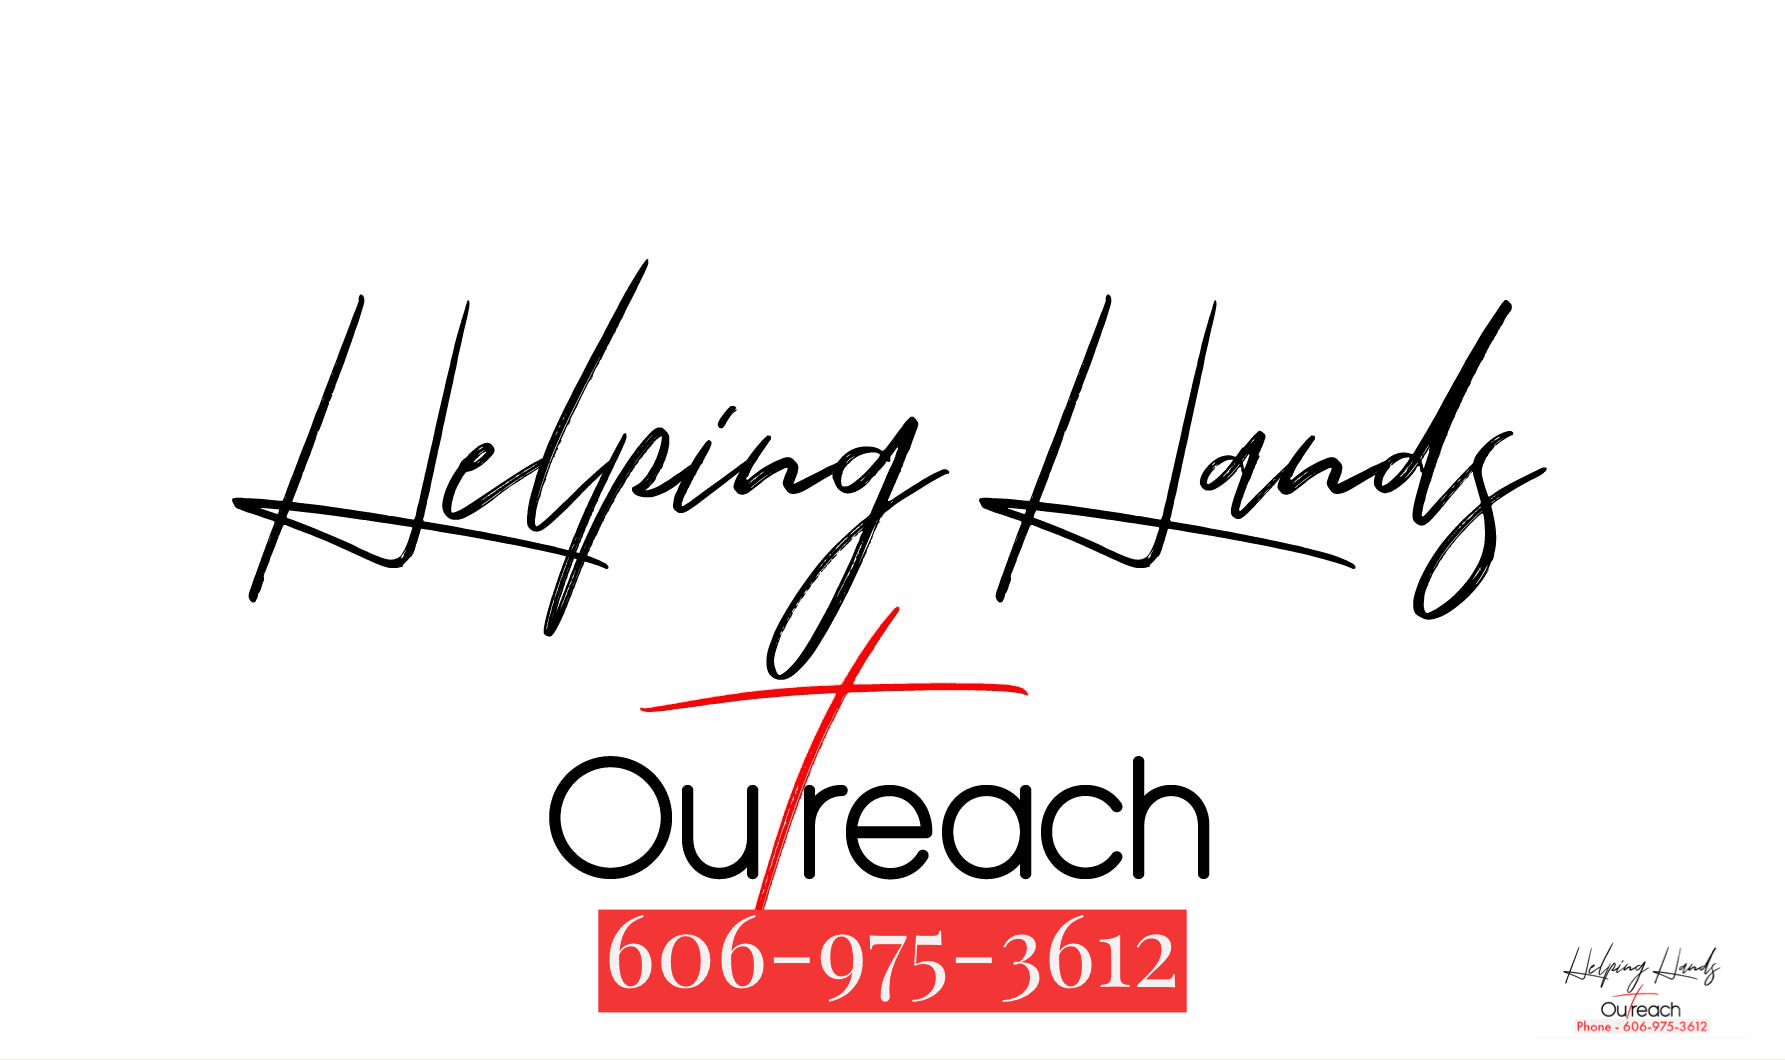 Helping Hands Angel Fund Ministry